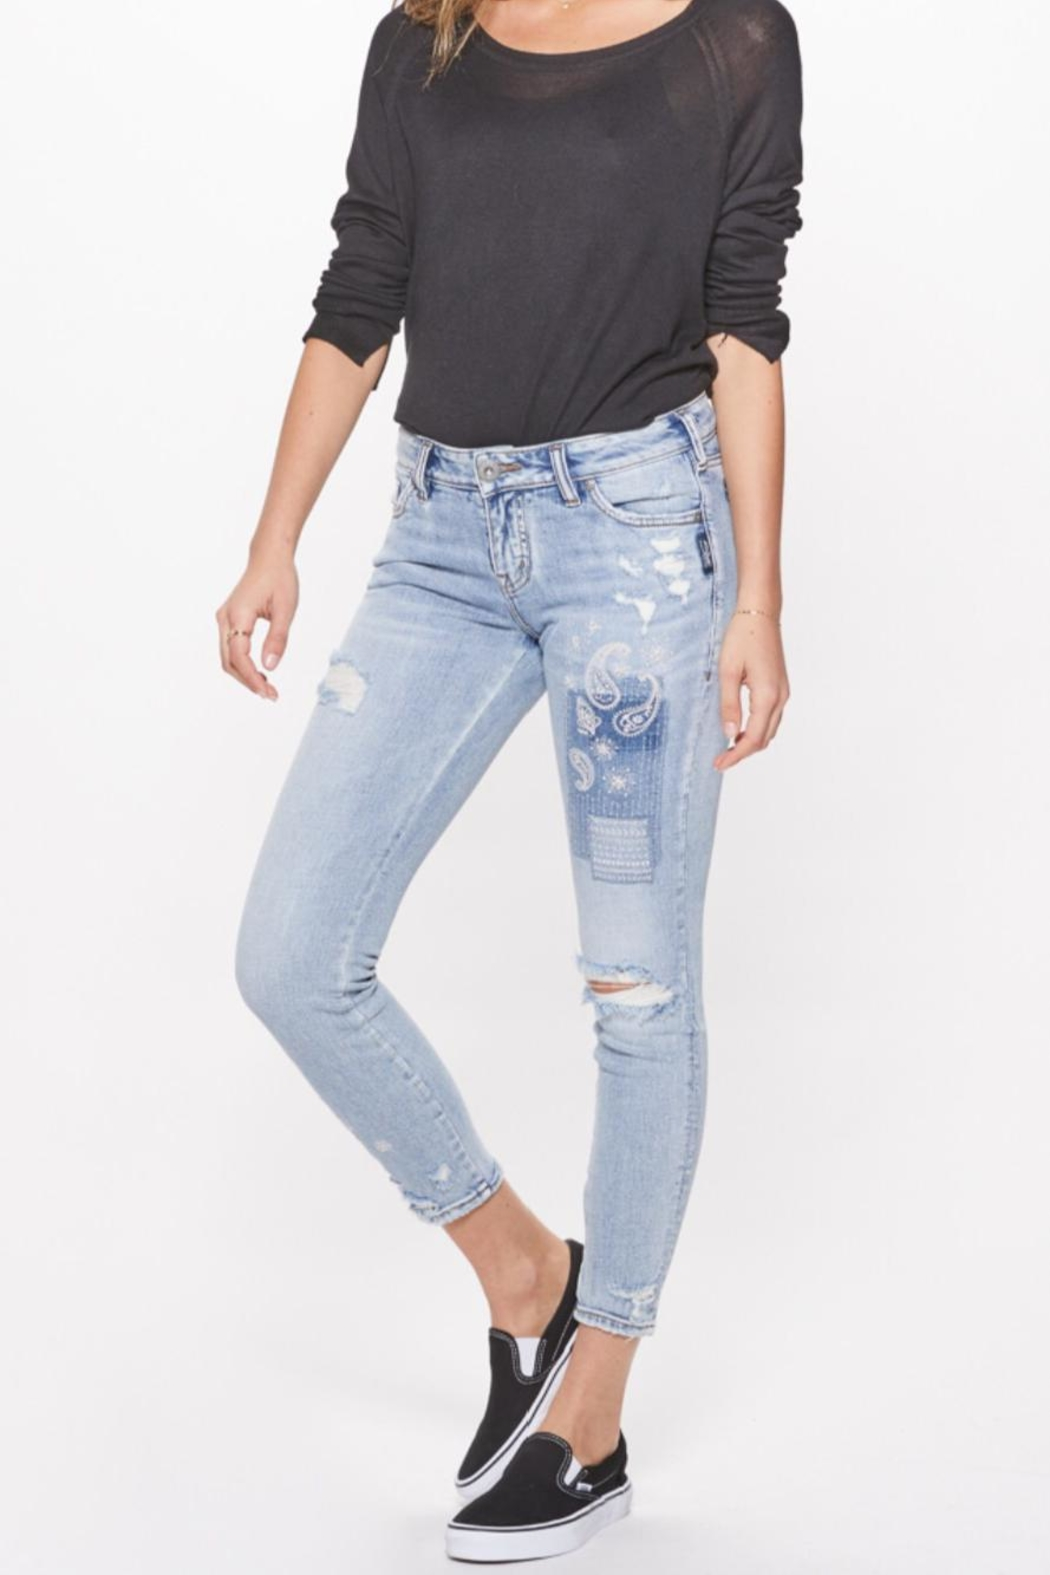 Silver Jeans Co. Distressed Skinny Jeans - Main Image